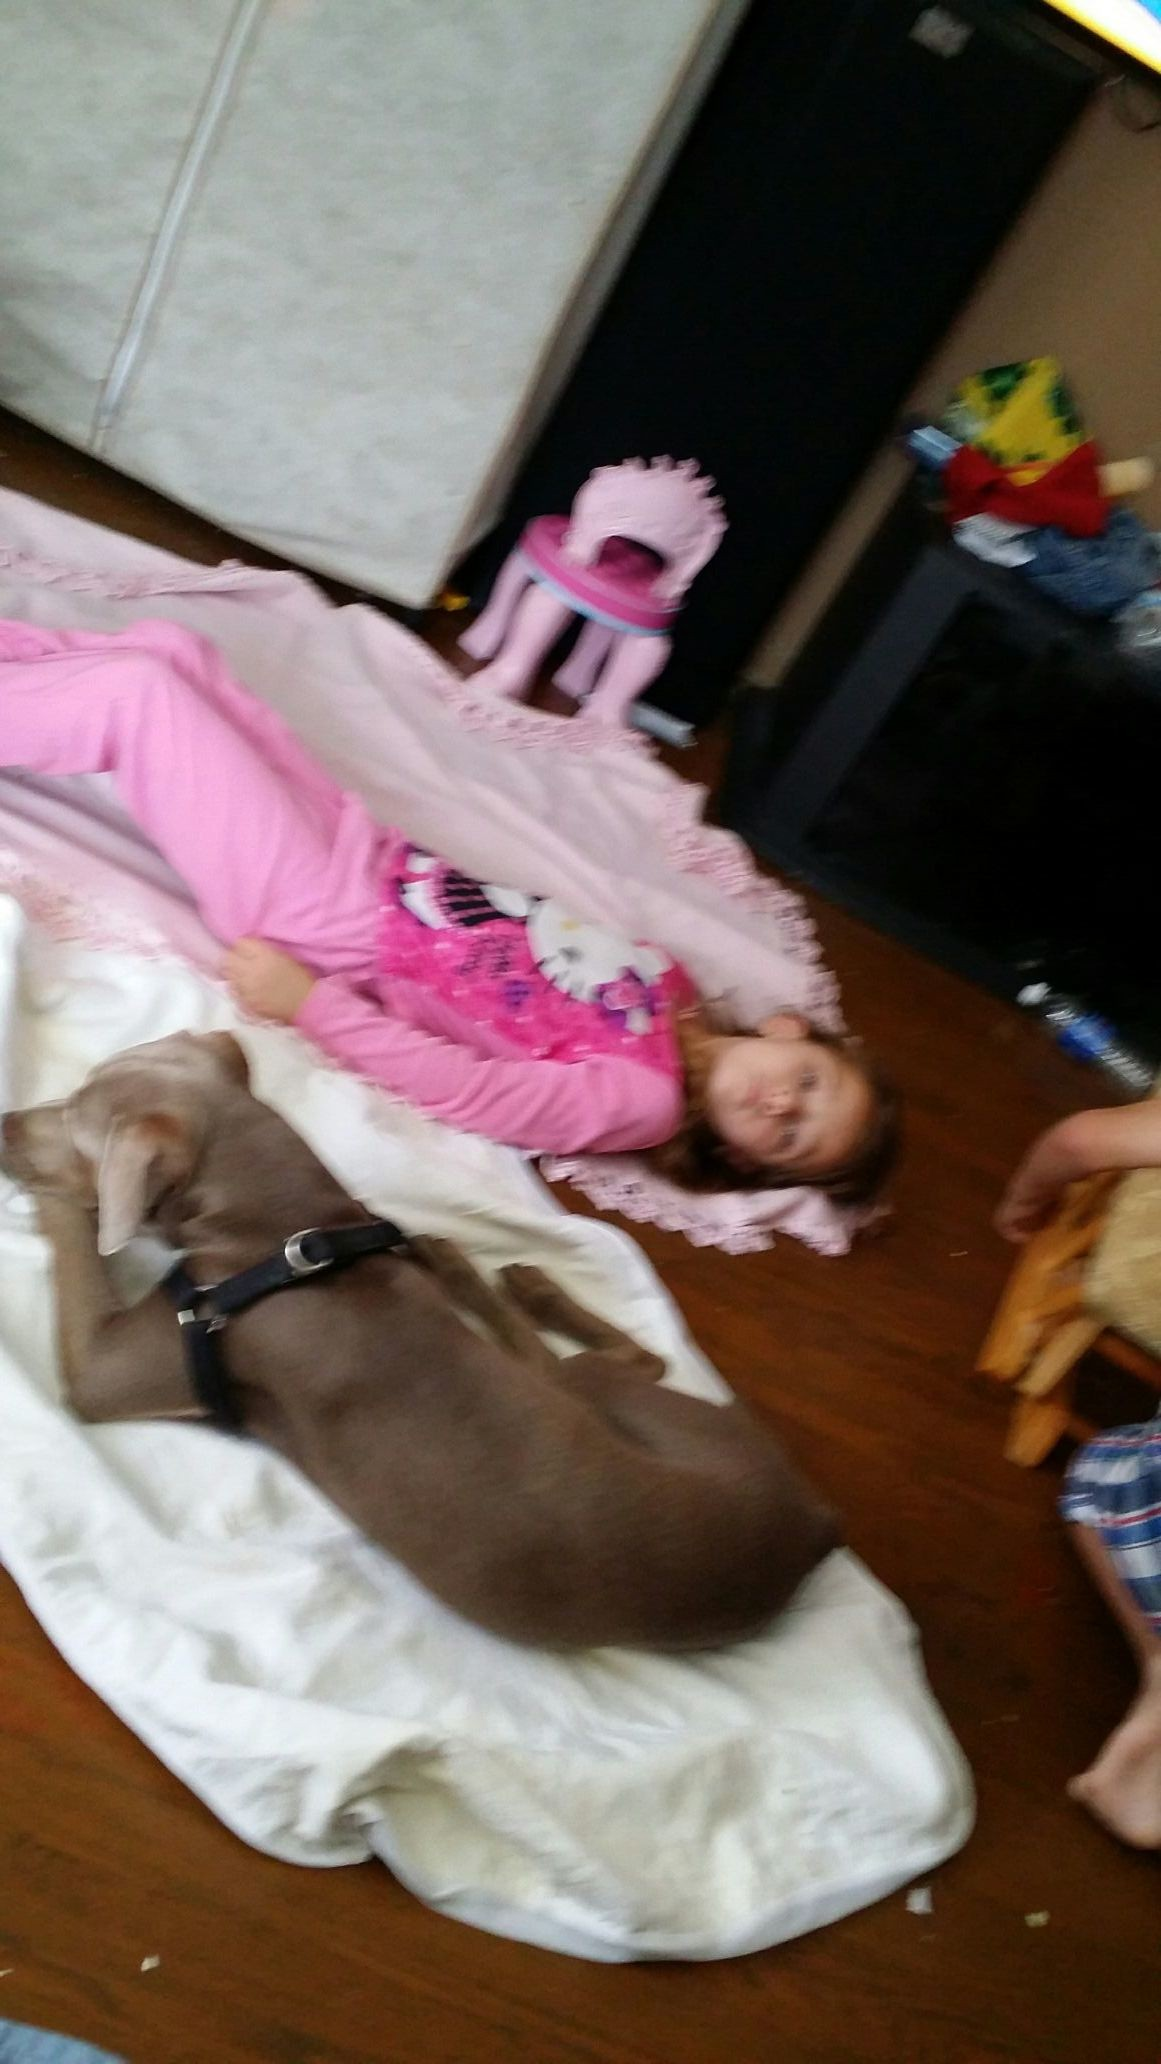 Kinda blurry but dozer is chillin with belle